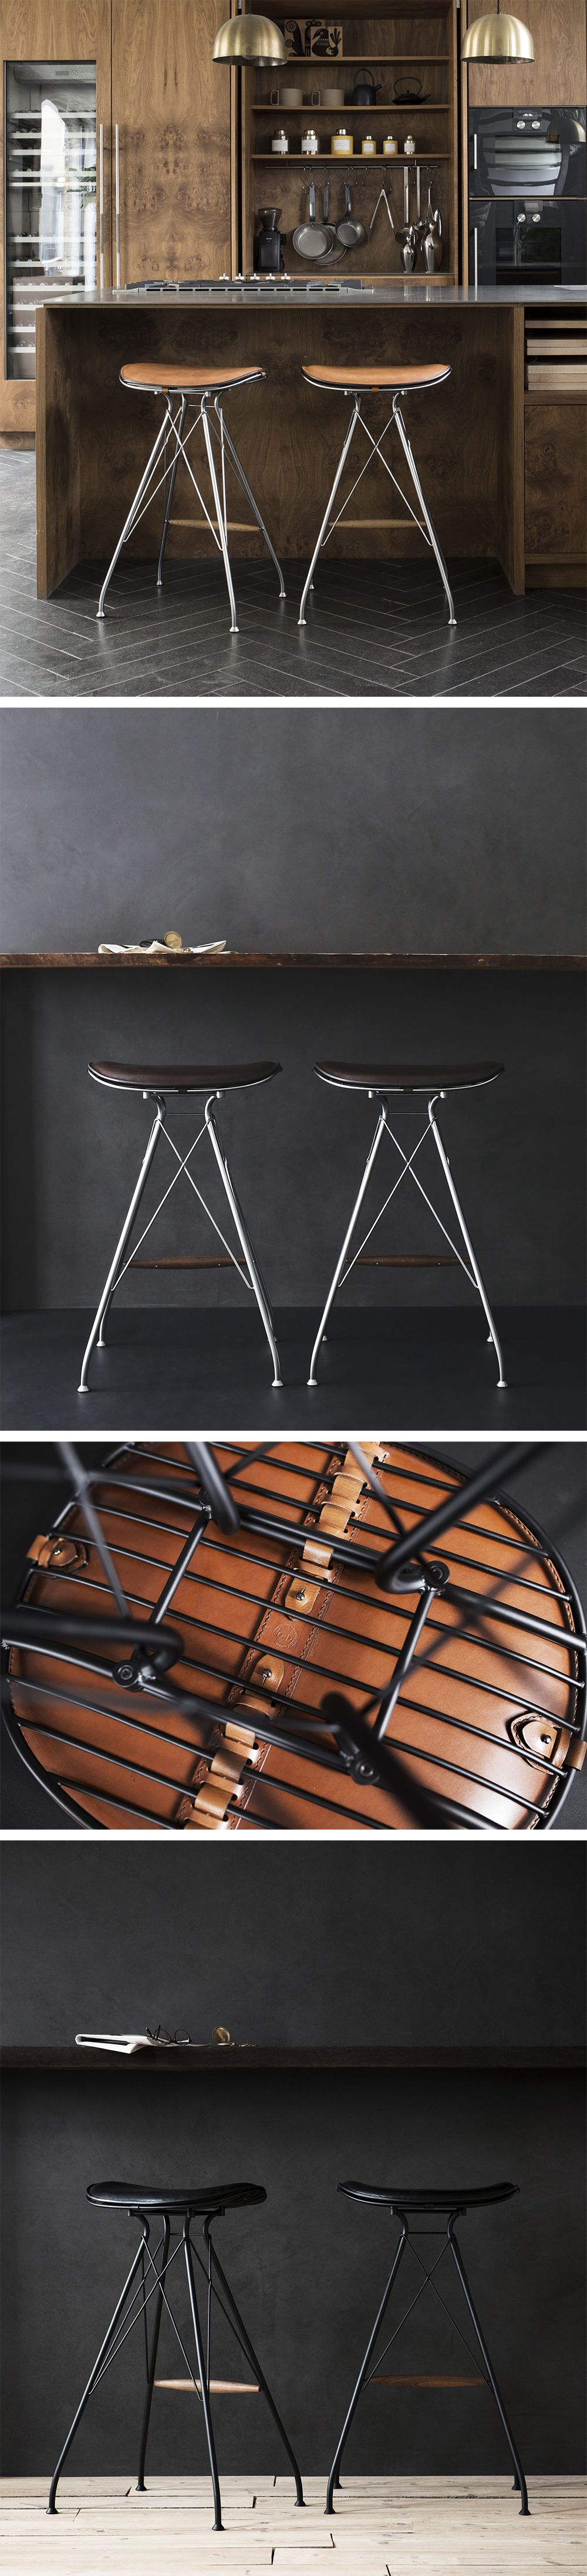 Wire Bar Stools From Overgaarddyrman In Satin Chrome Steel With Yellowstone Dark Brown Leather And Wire Bar Stools Bar Stools Contemporary Furniture Design